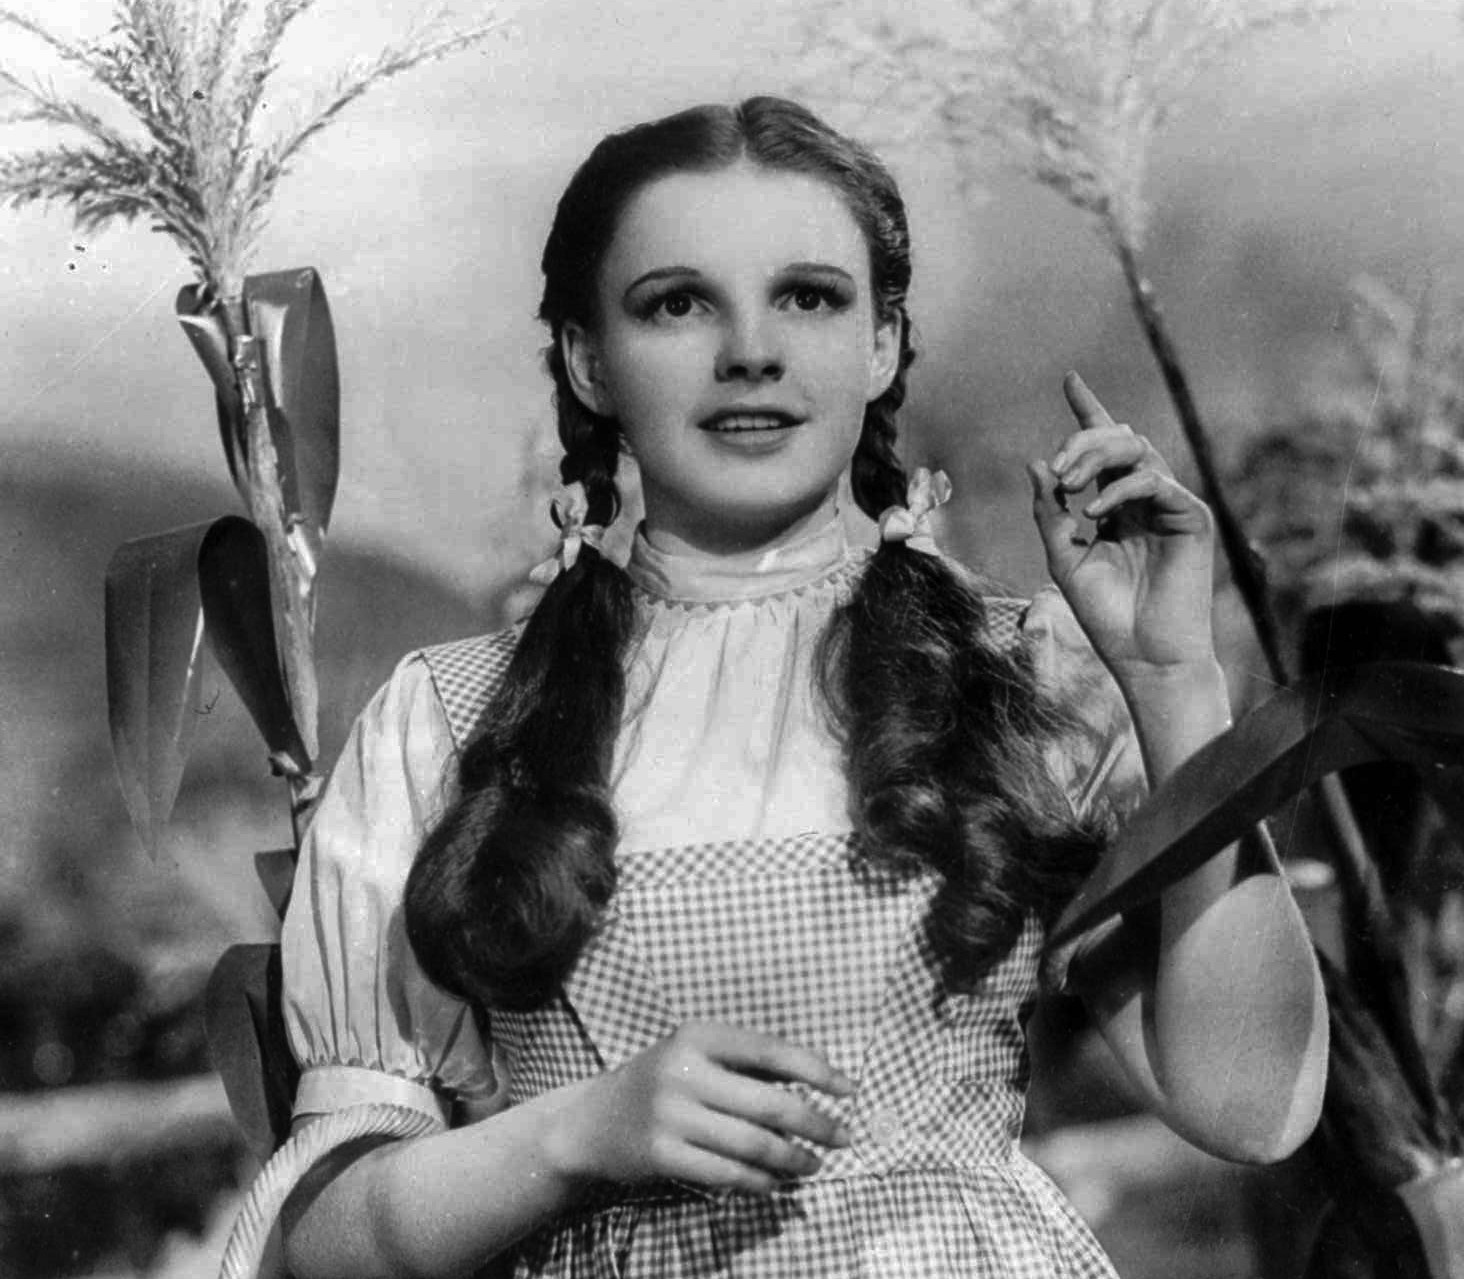 There's no place like home: 'The Wizard of Oz' returns to theaters